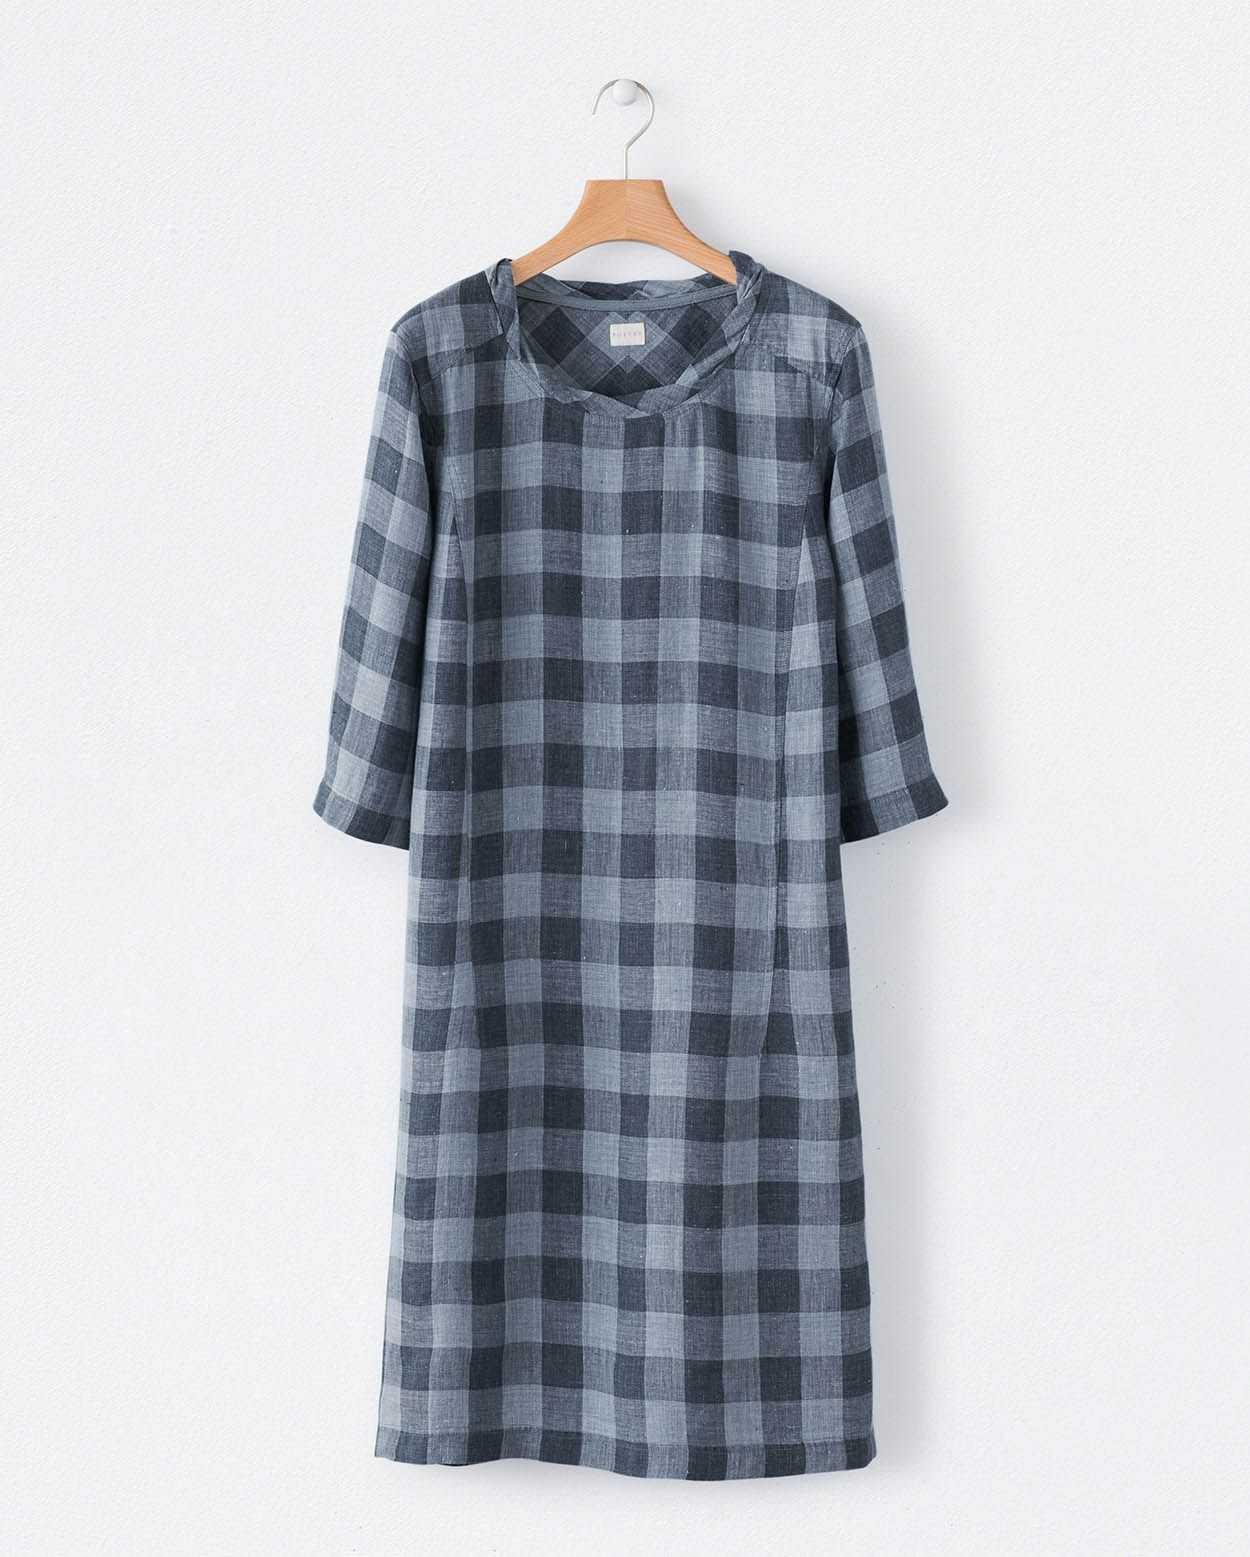 poetry - checked linen dress : grey blue / ink stone